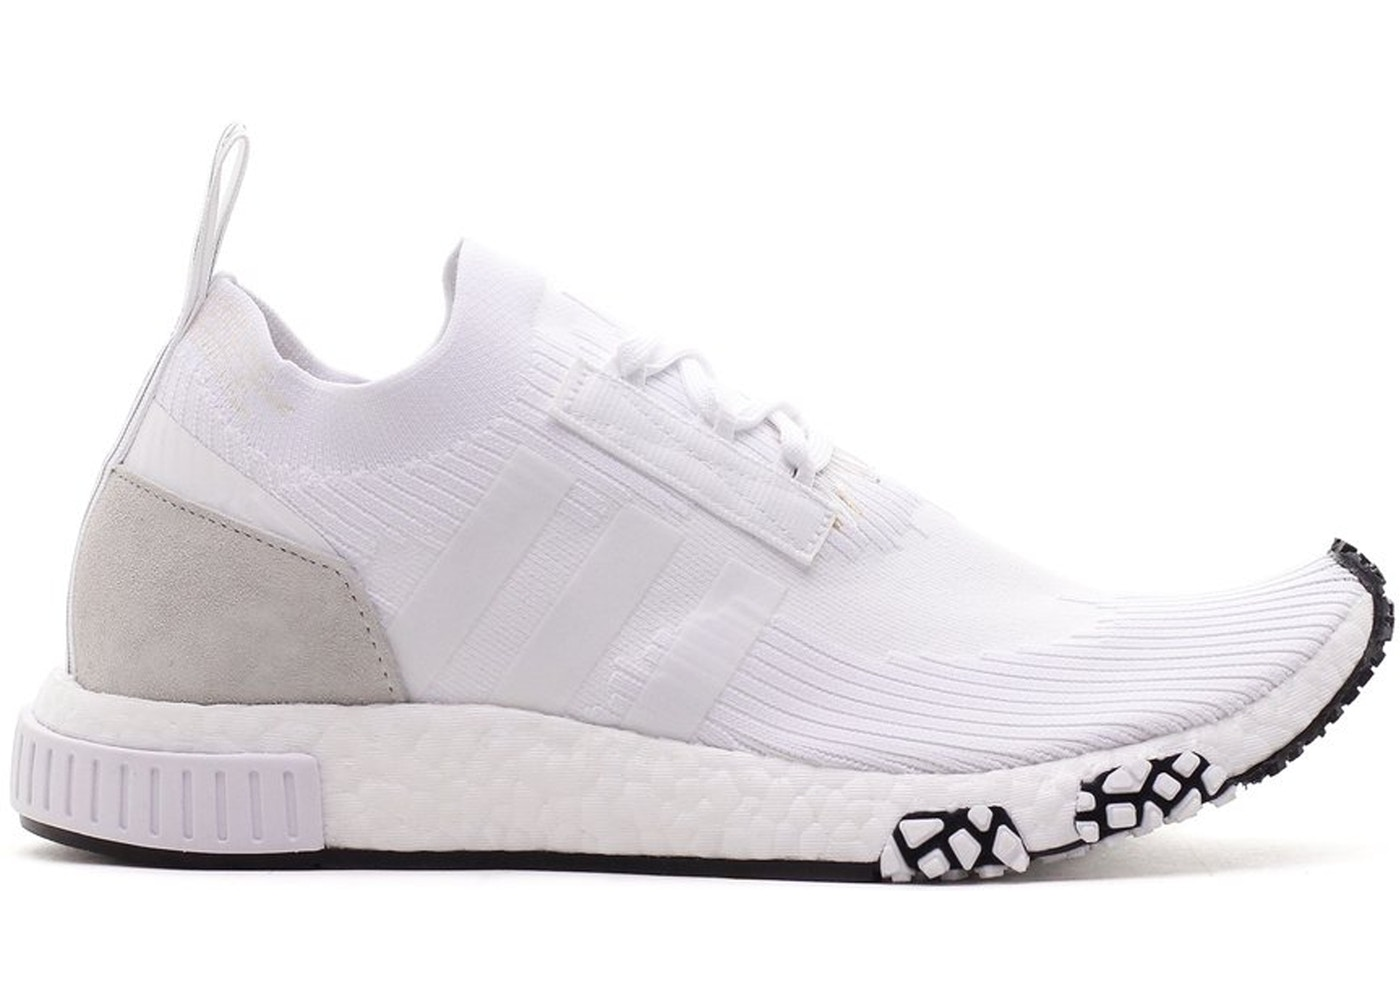 nouvelle collection 8a513 99bba adidas NMD Racer White Grey